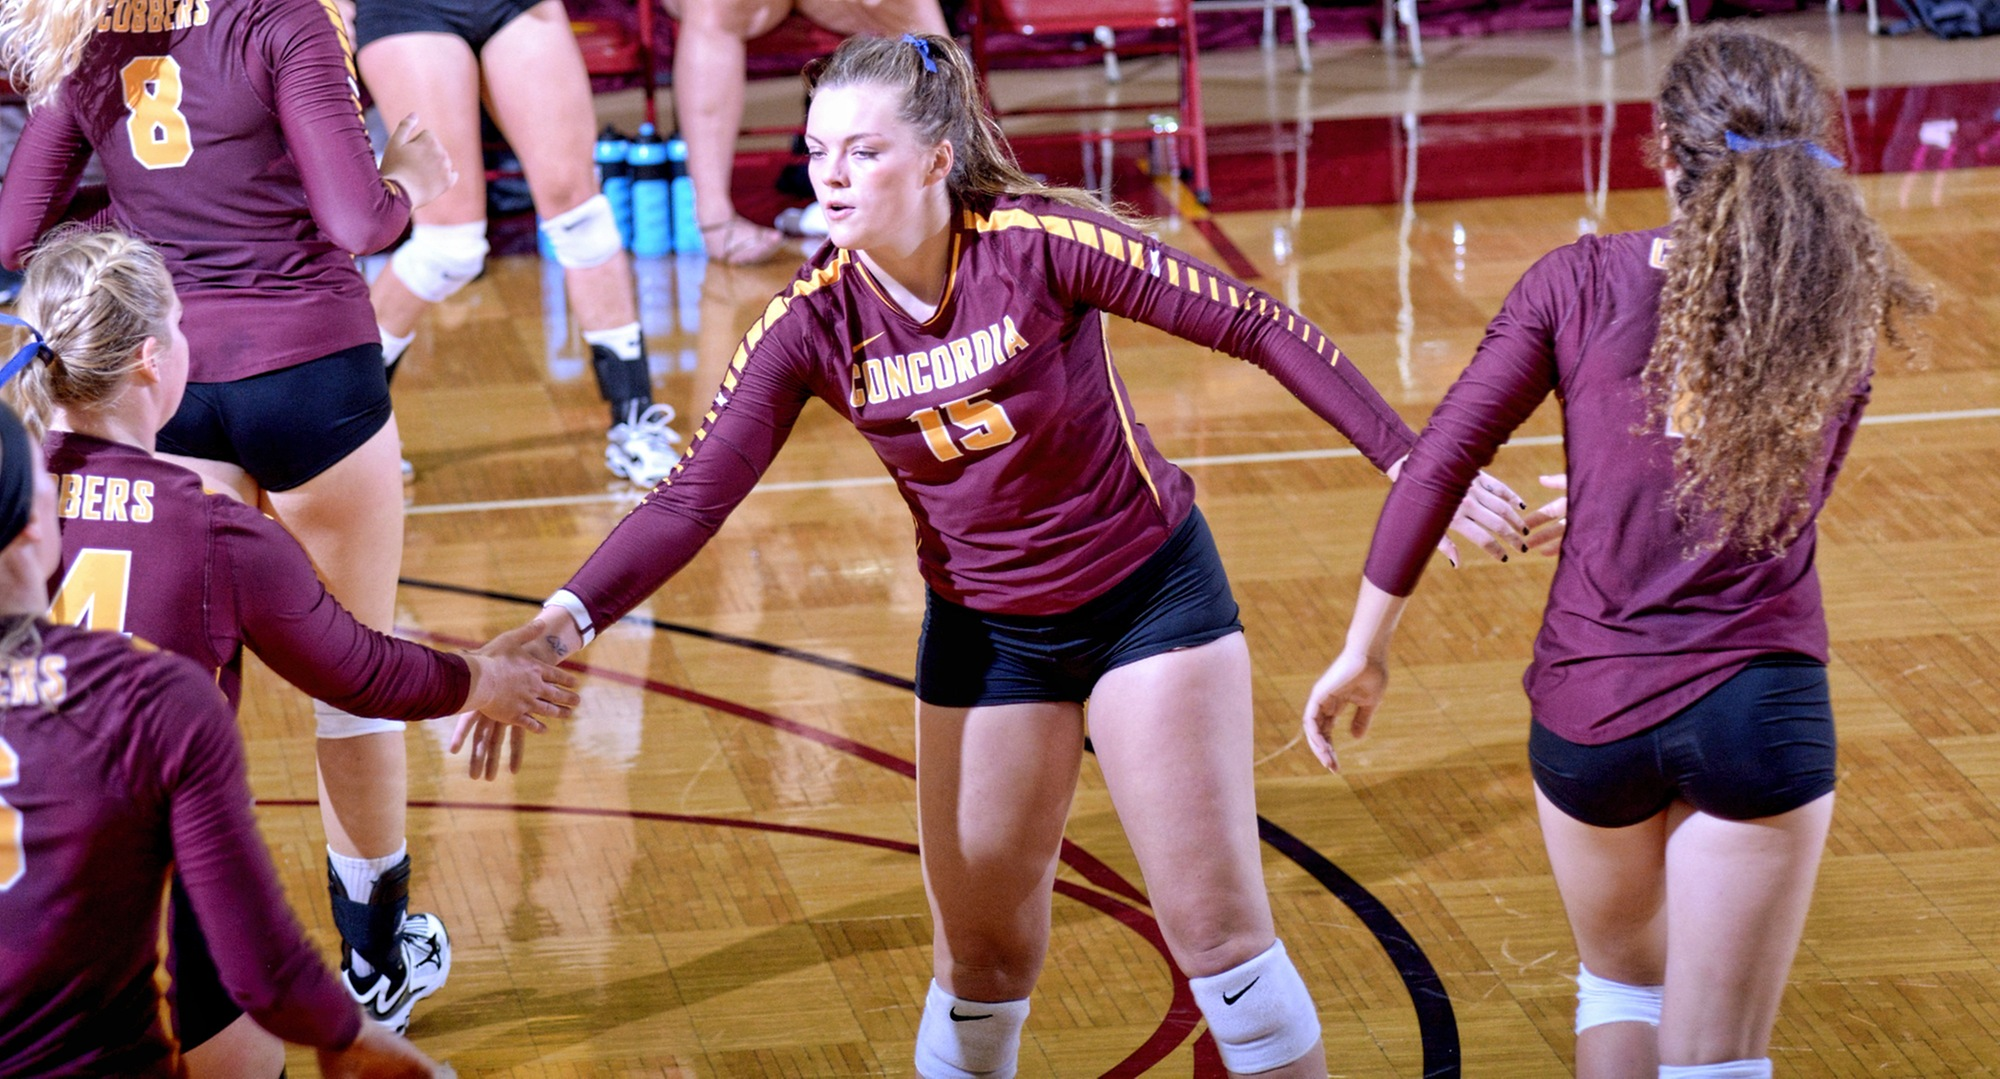 Concordia freshman Faith Anderson had 24 kills in the final two matches at the Wis.-Eau Claire Tournament and was named to the All-Tournament Team.